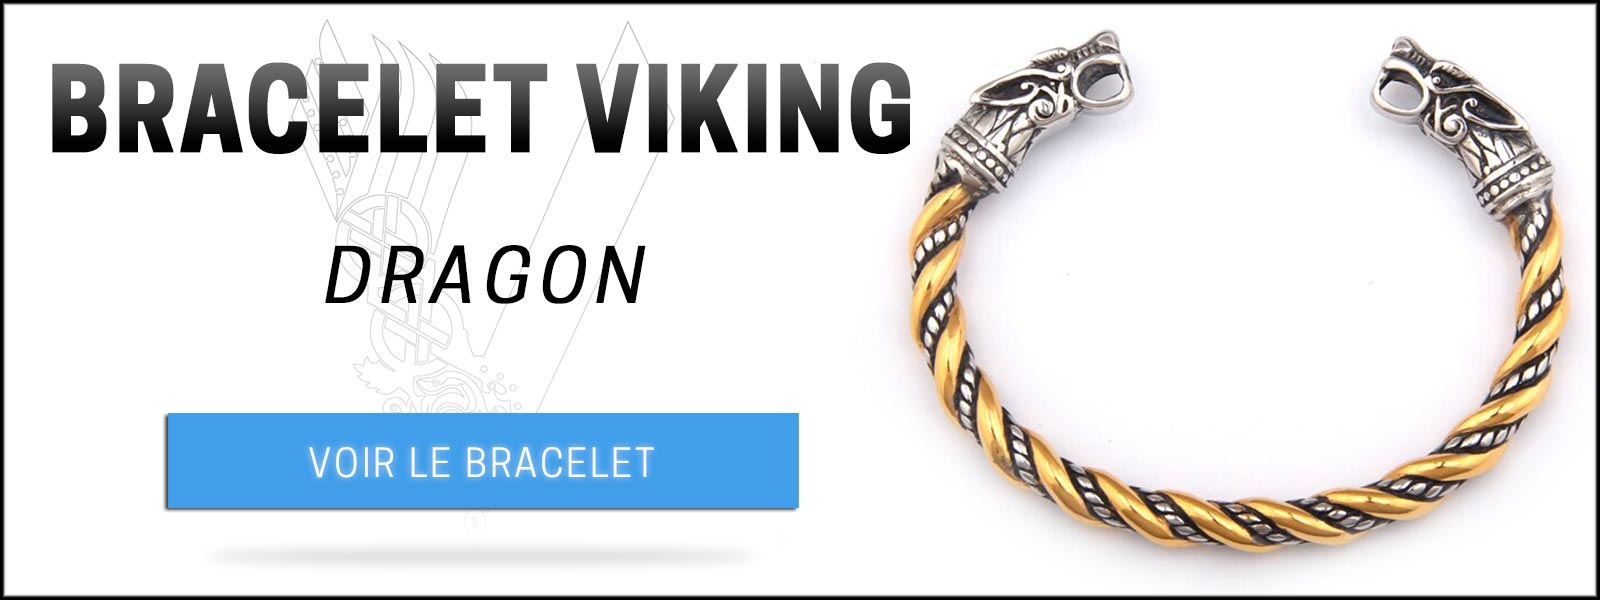 Bracelet viking dragon